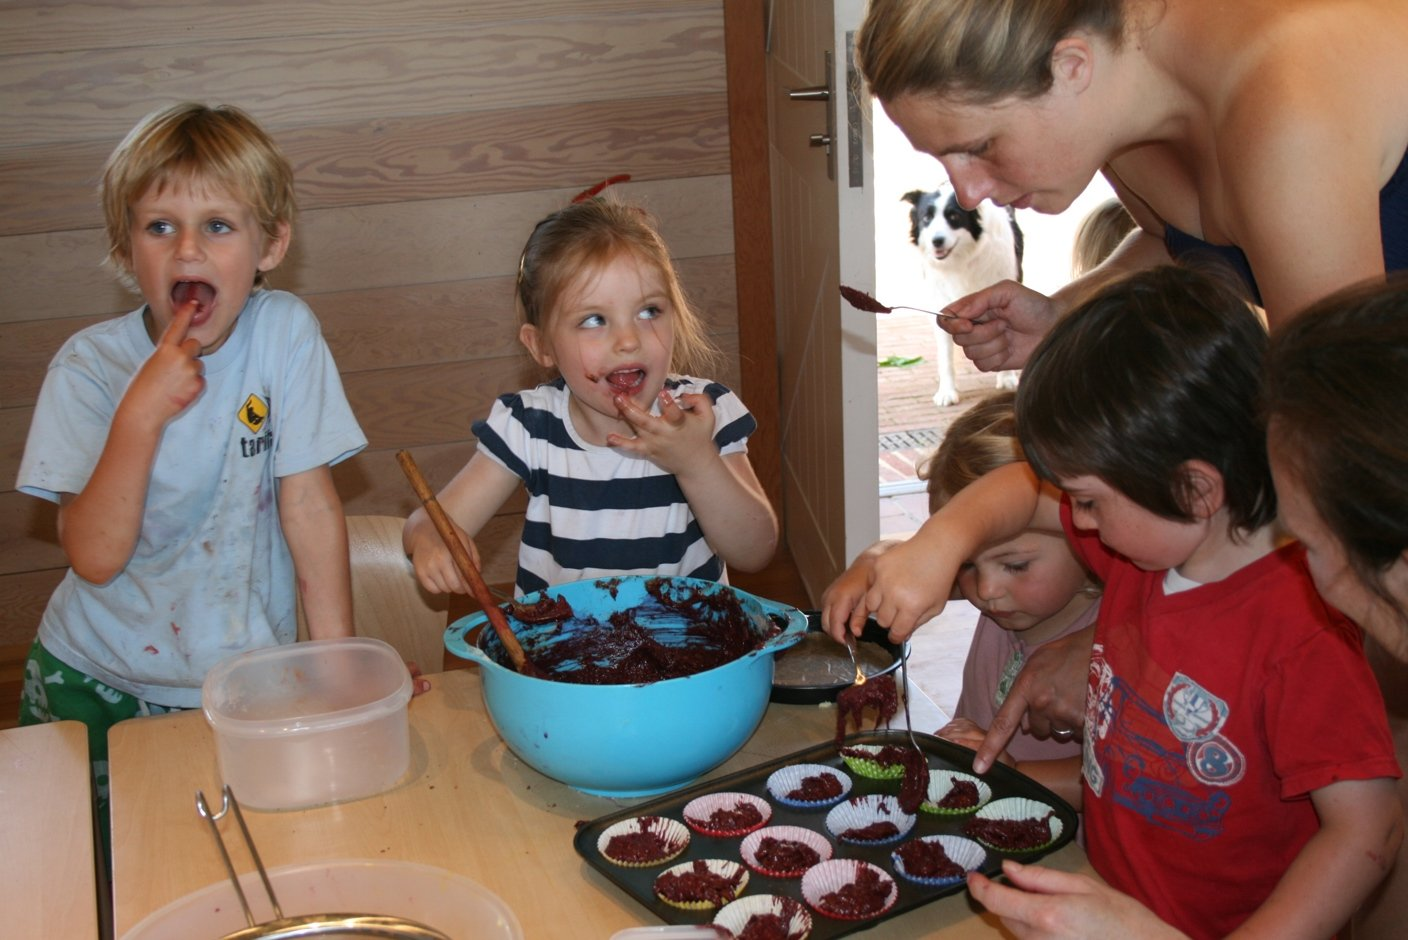 Images of children cooking beetroot and chocolate cakes in the Education room at Dixter Farm